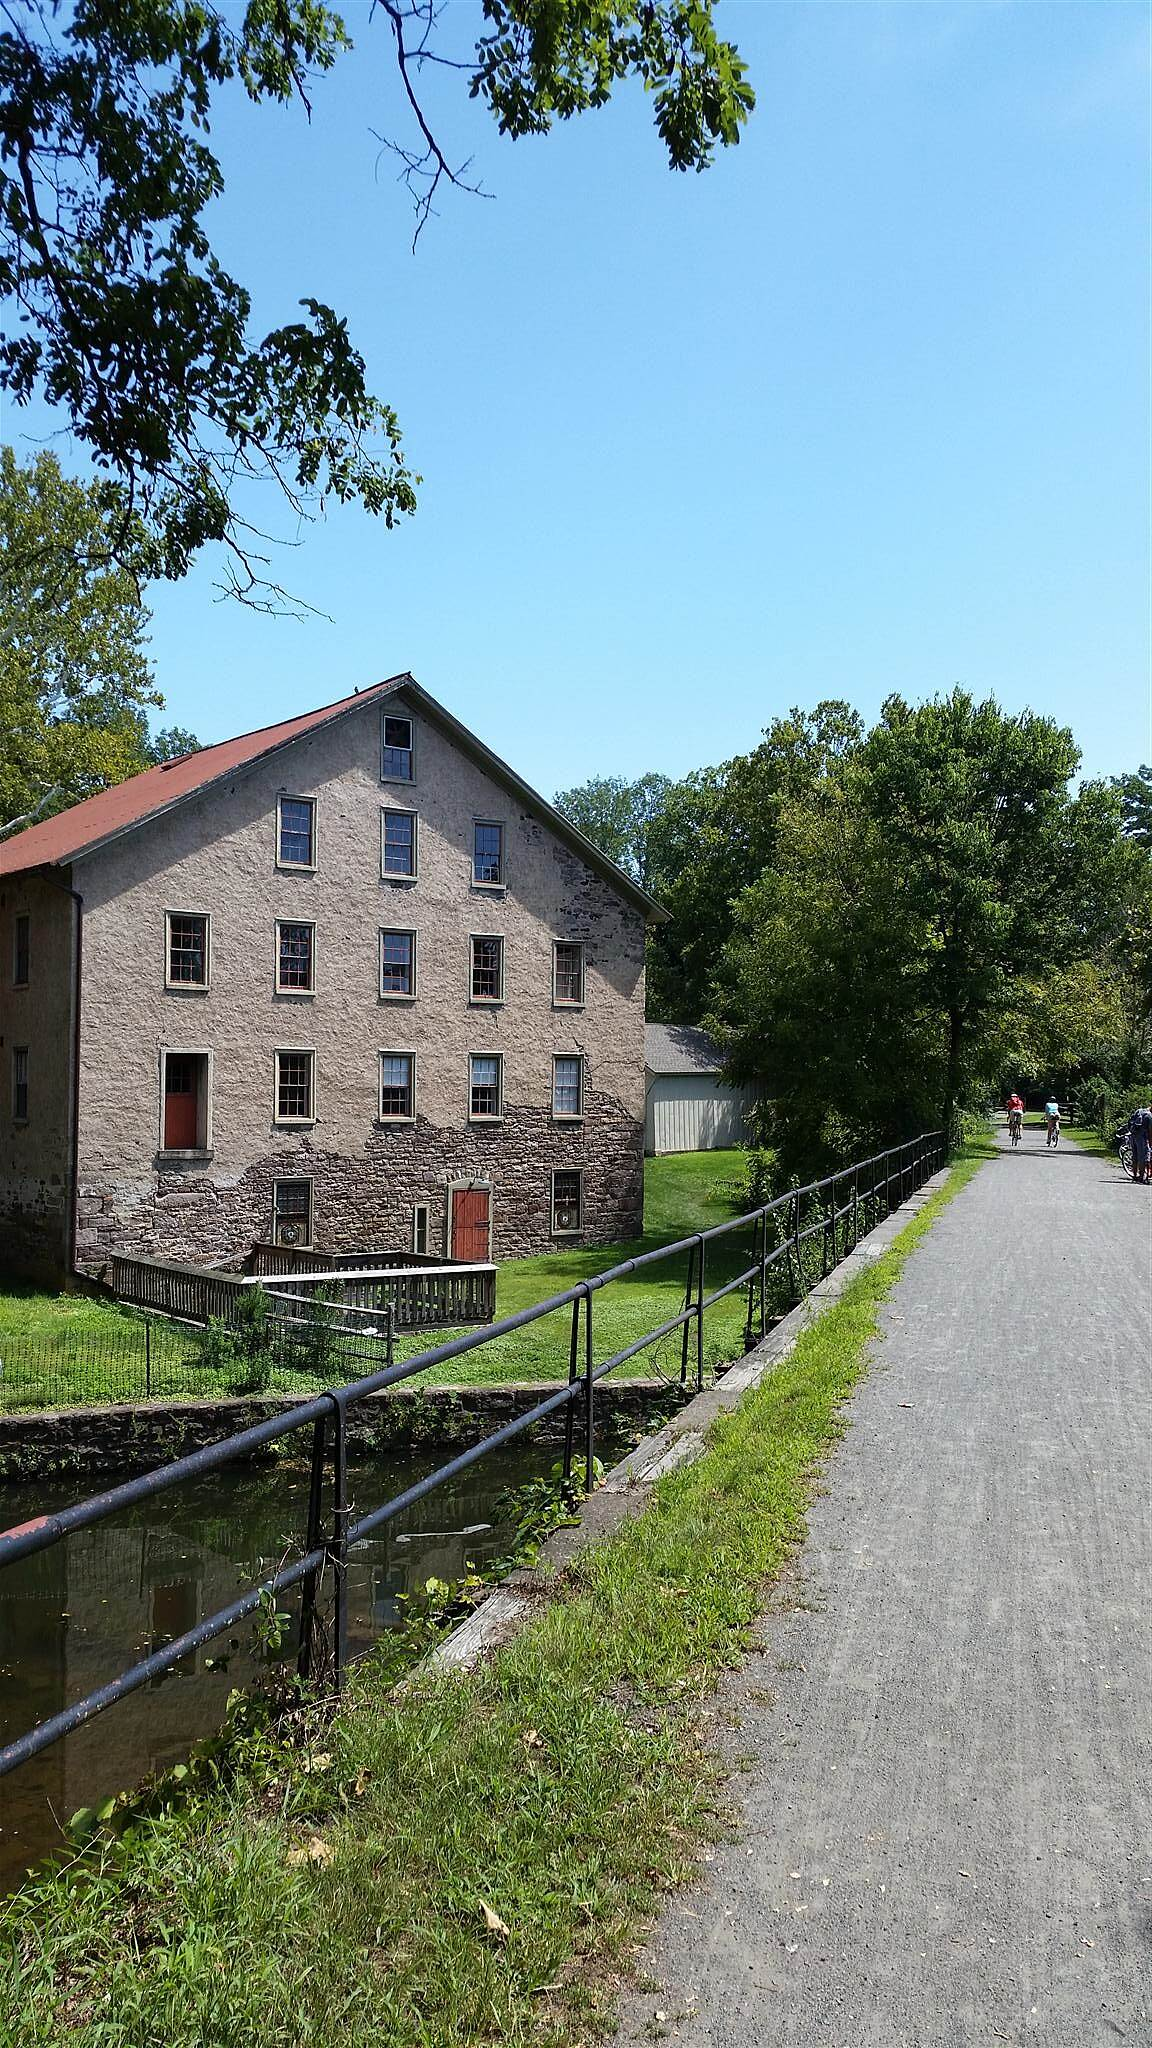 Delaware and Raritan Canal State Park Trail Photo by hmichig